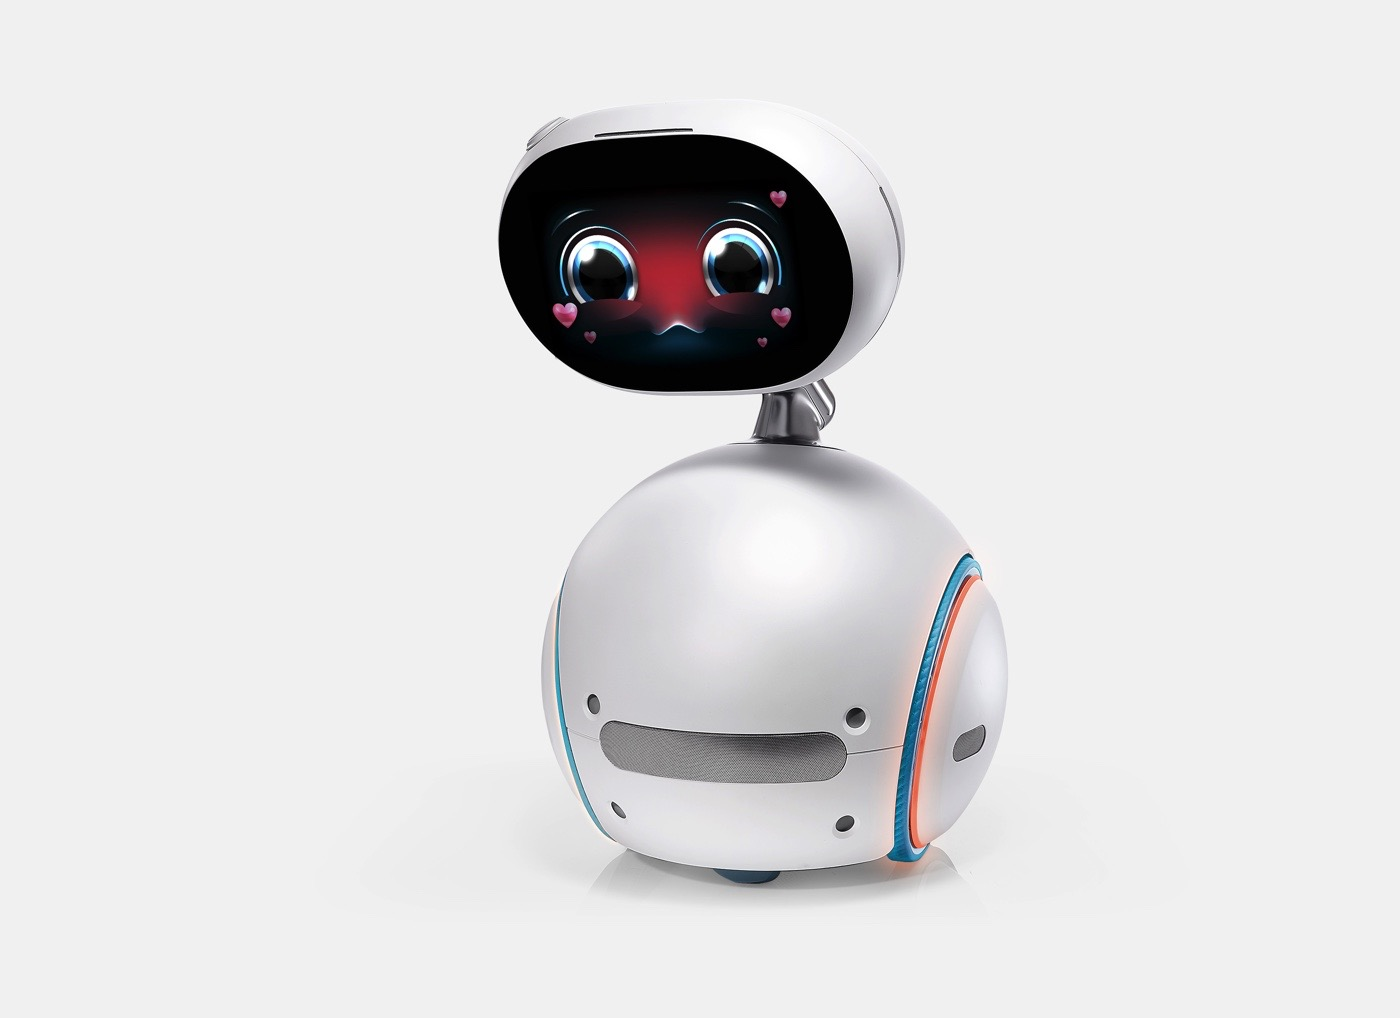 The New Siri? The Next Generation of Home Assistant Robots